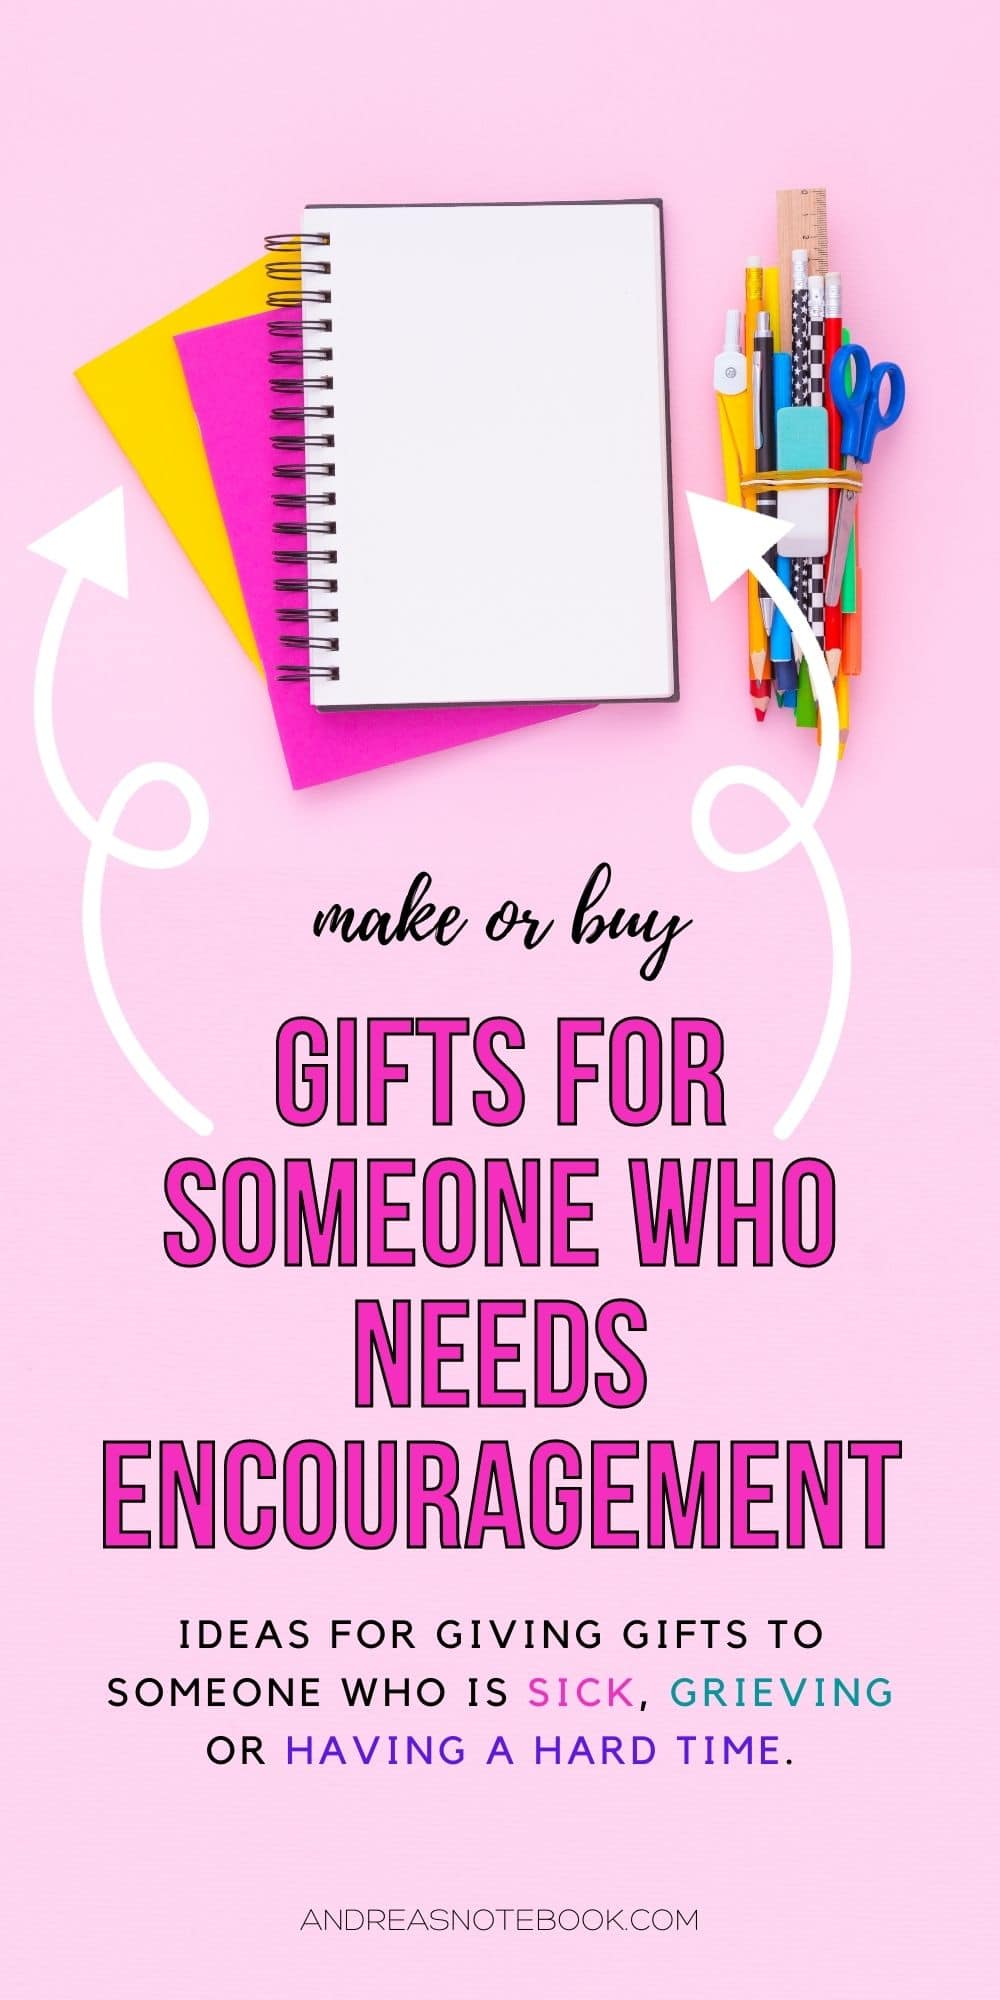 pink background. text says: gifts for someone who needs encouragement